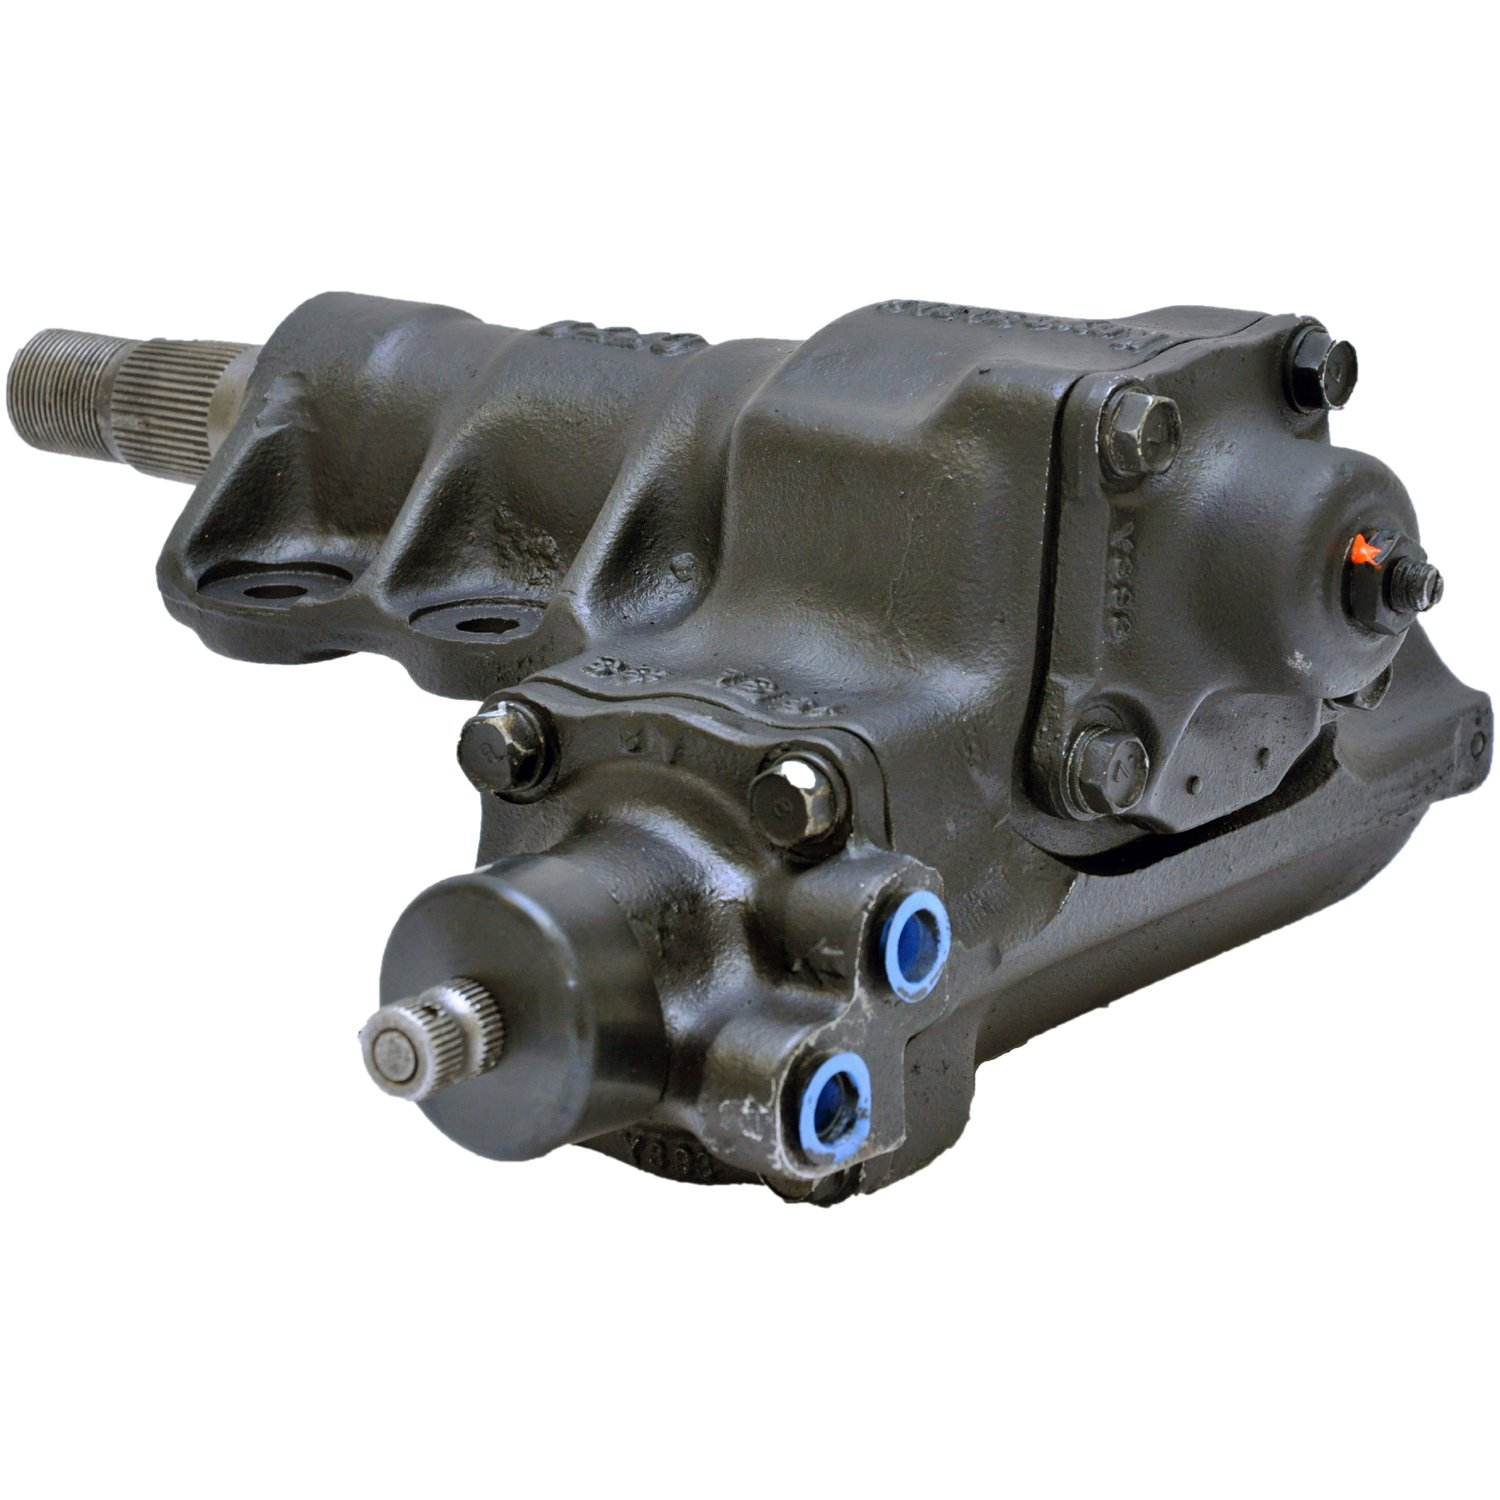 ACDelco 36G0205 Professional Steering Gear without Pitman Arm Remanufactured